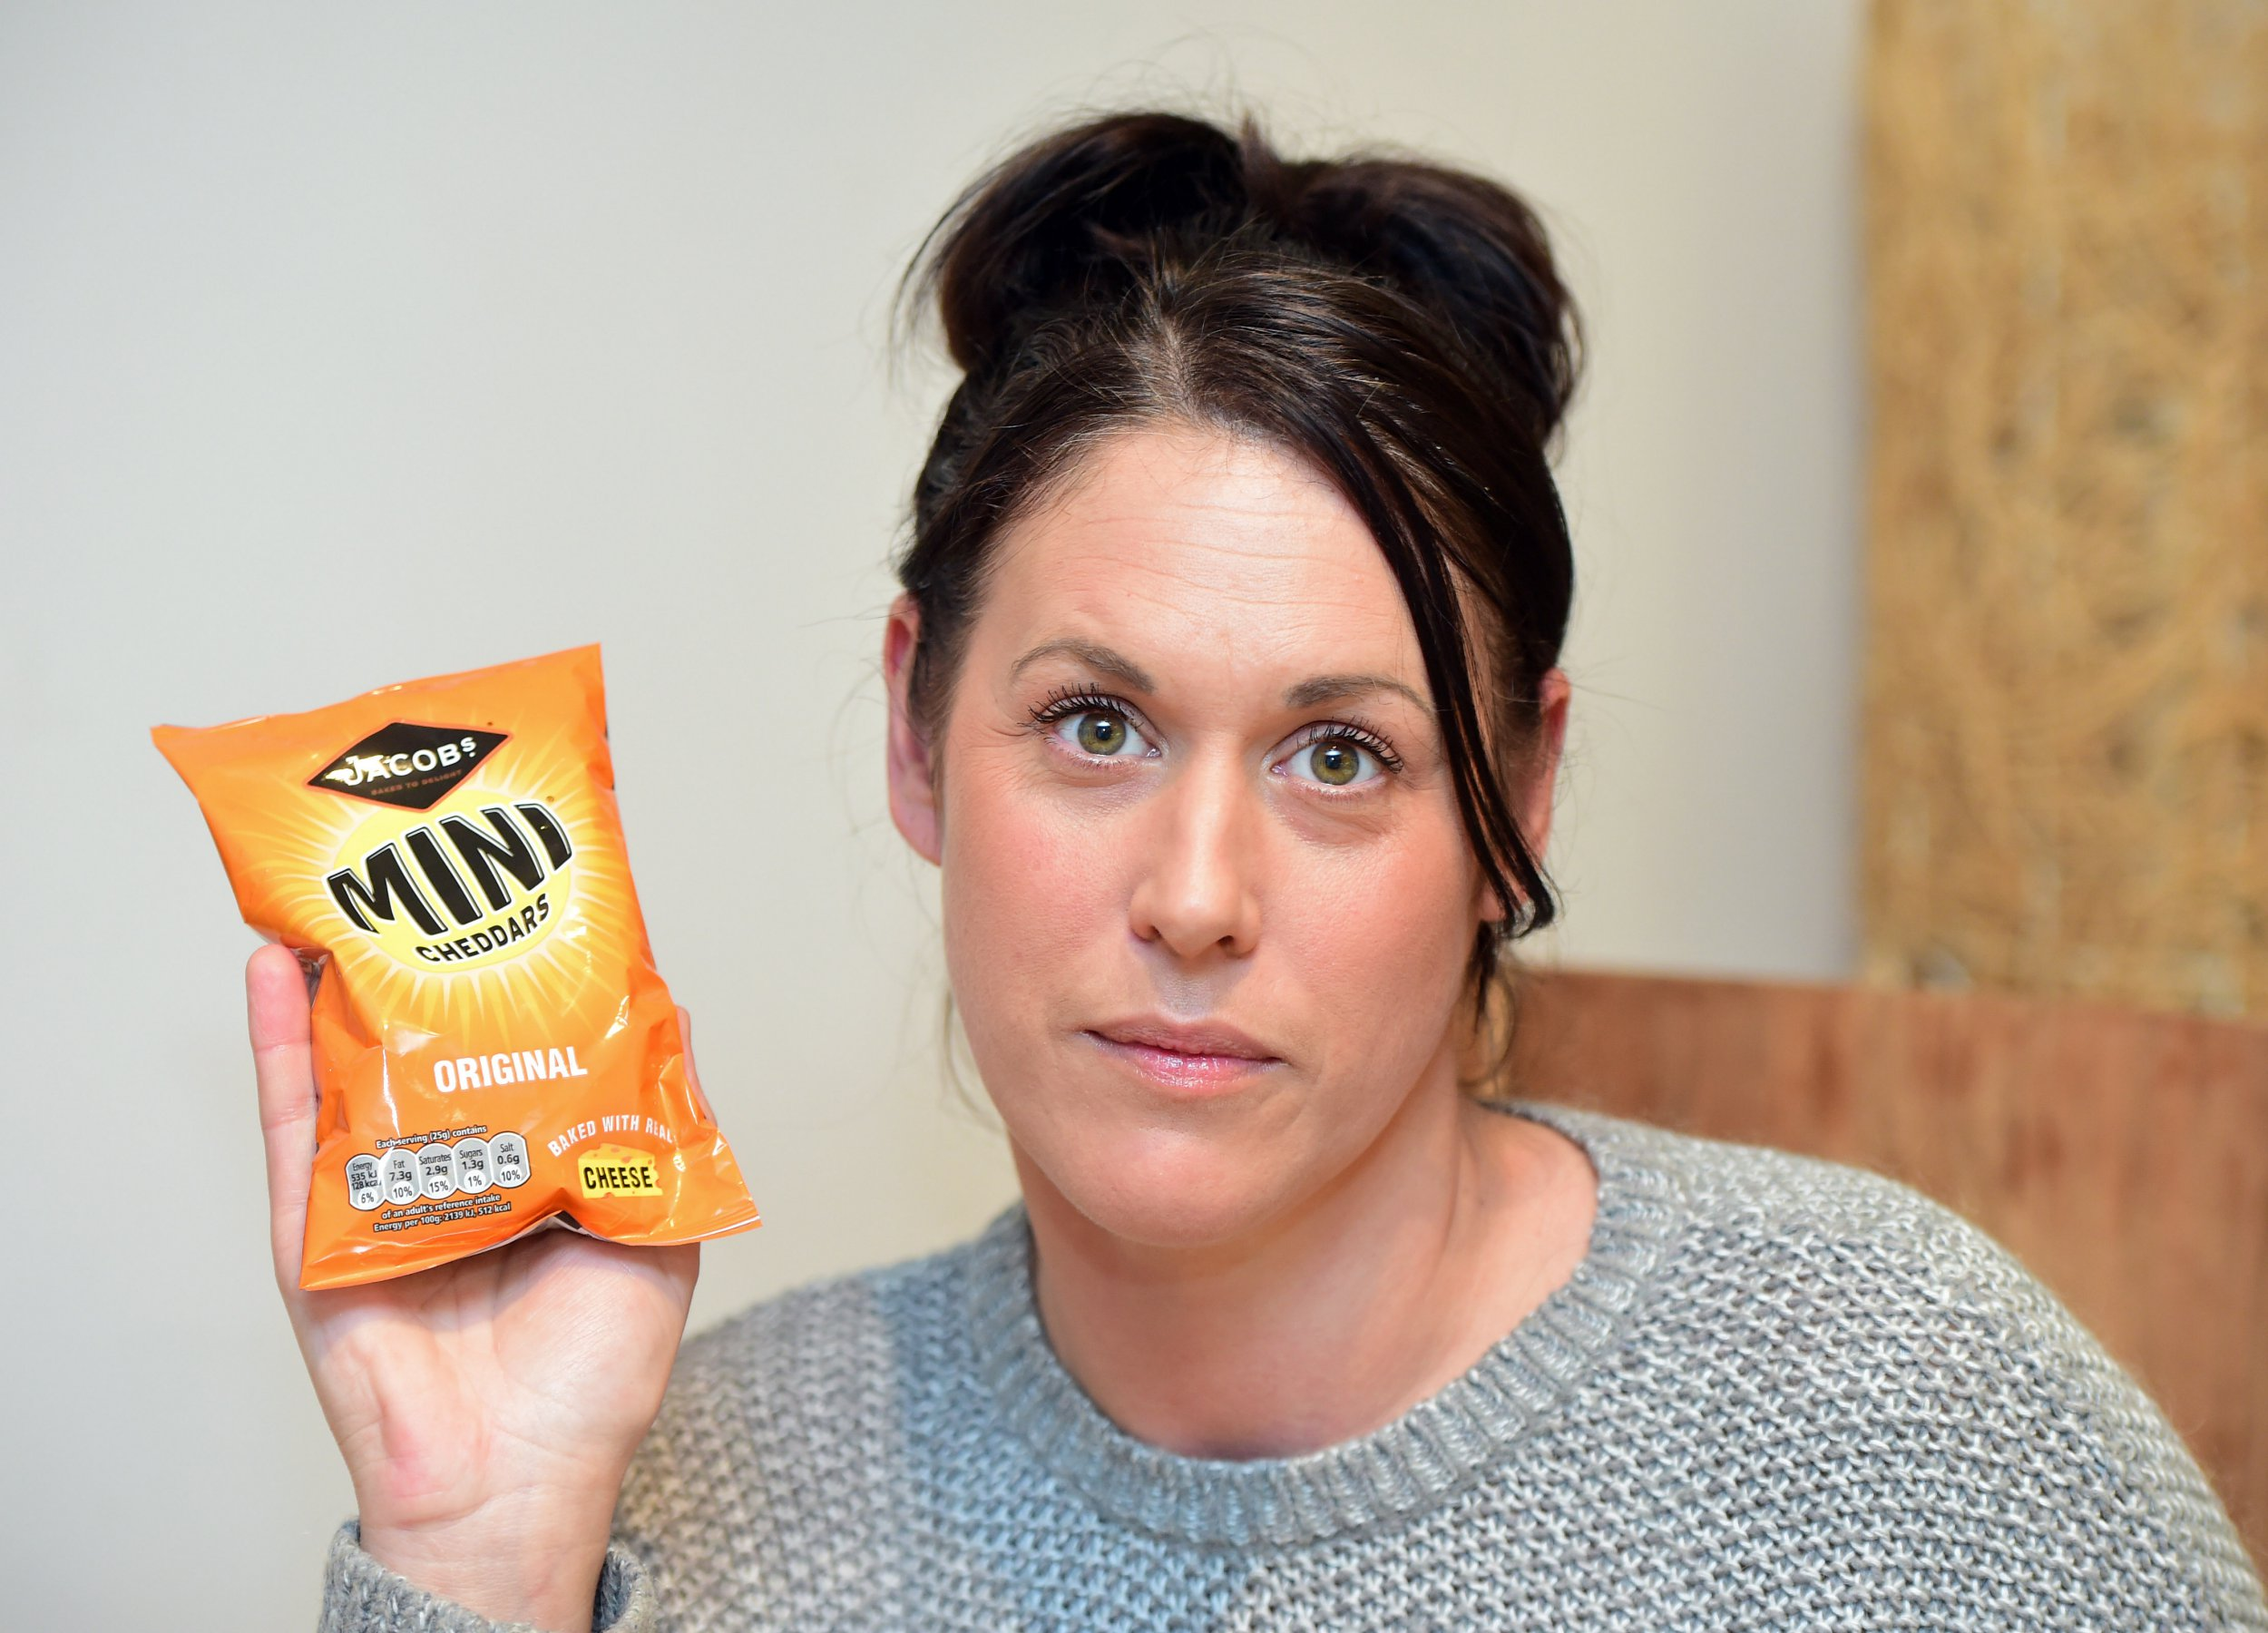 Mum 'made to spit out Mini Cheddars by police who thought she was smuggling drugs'